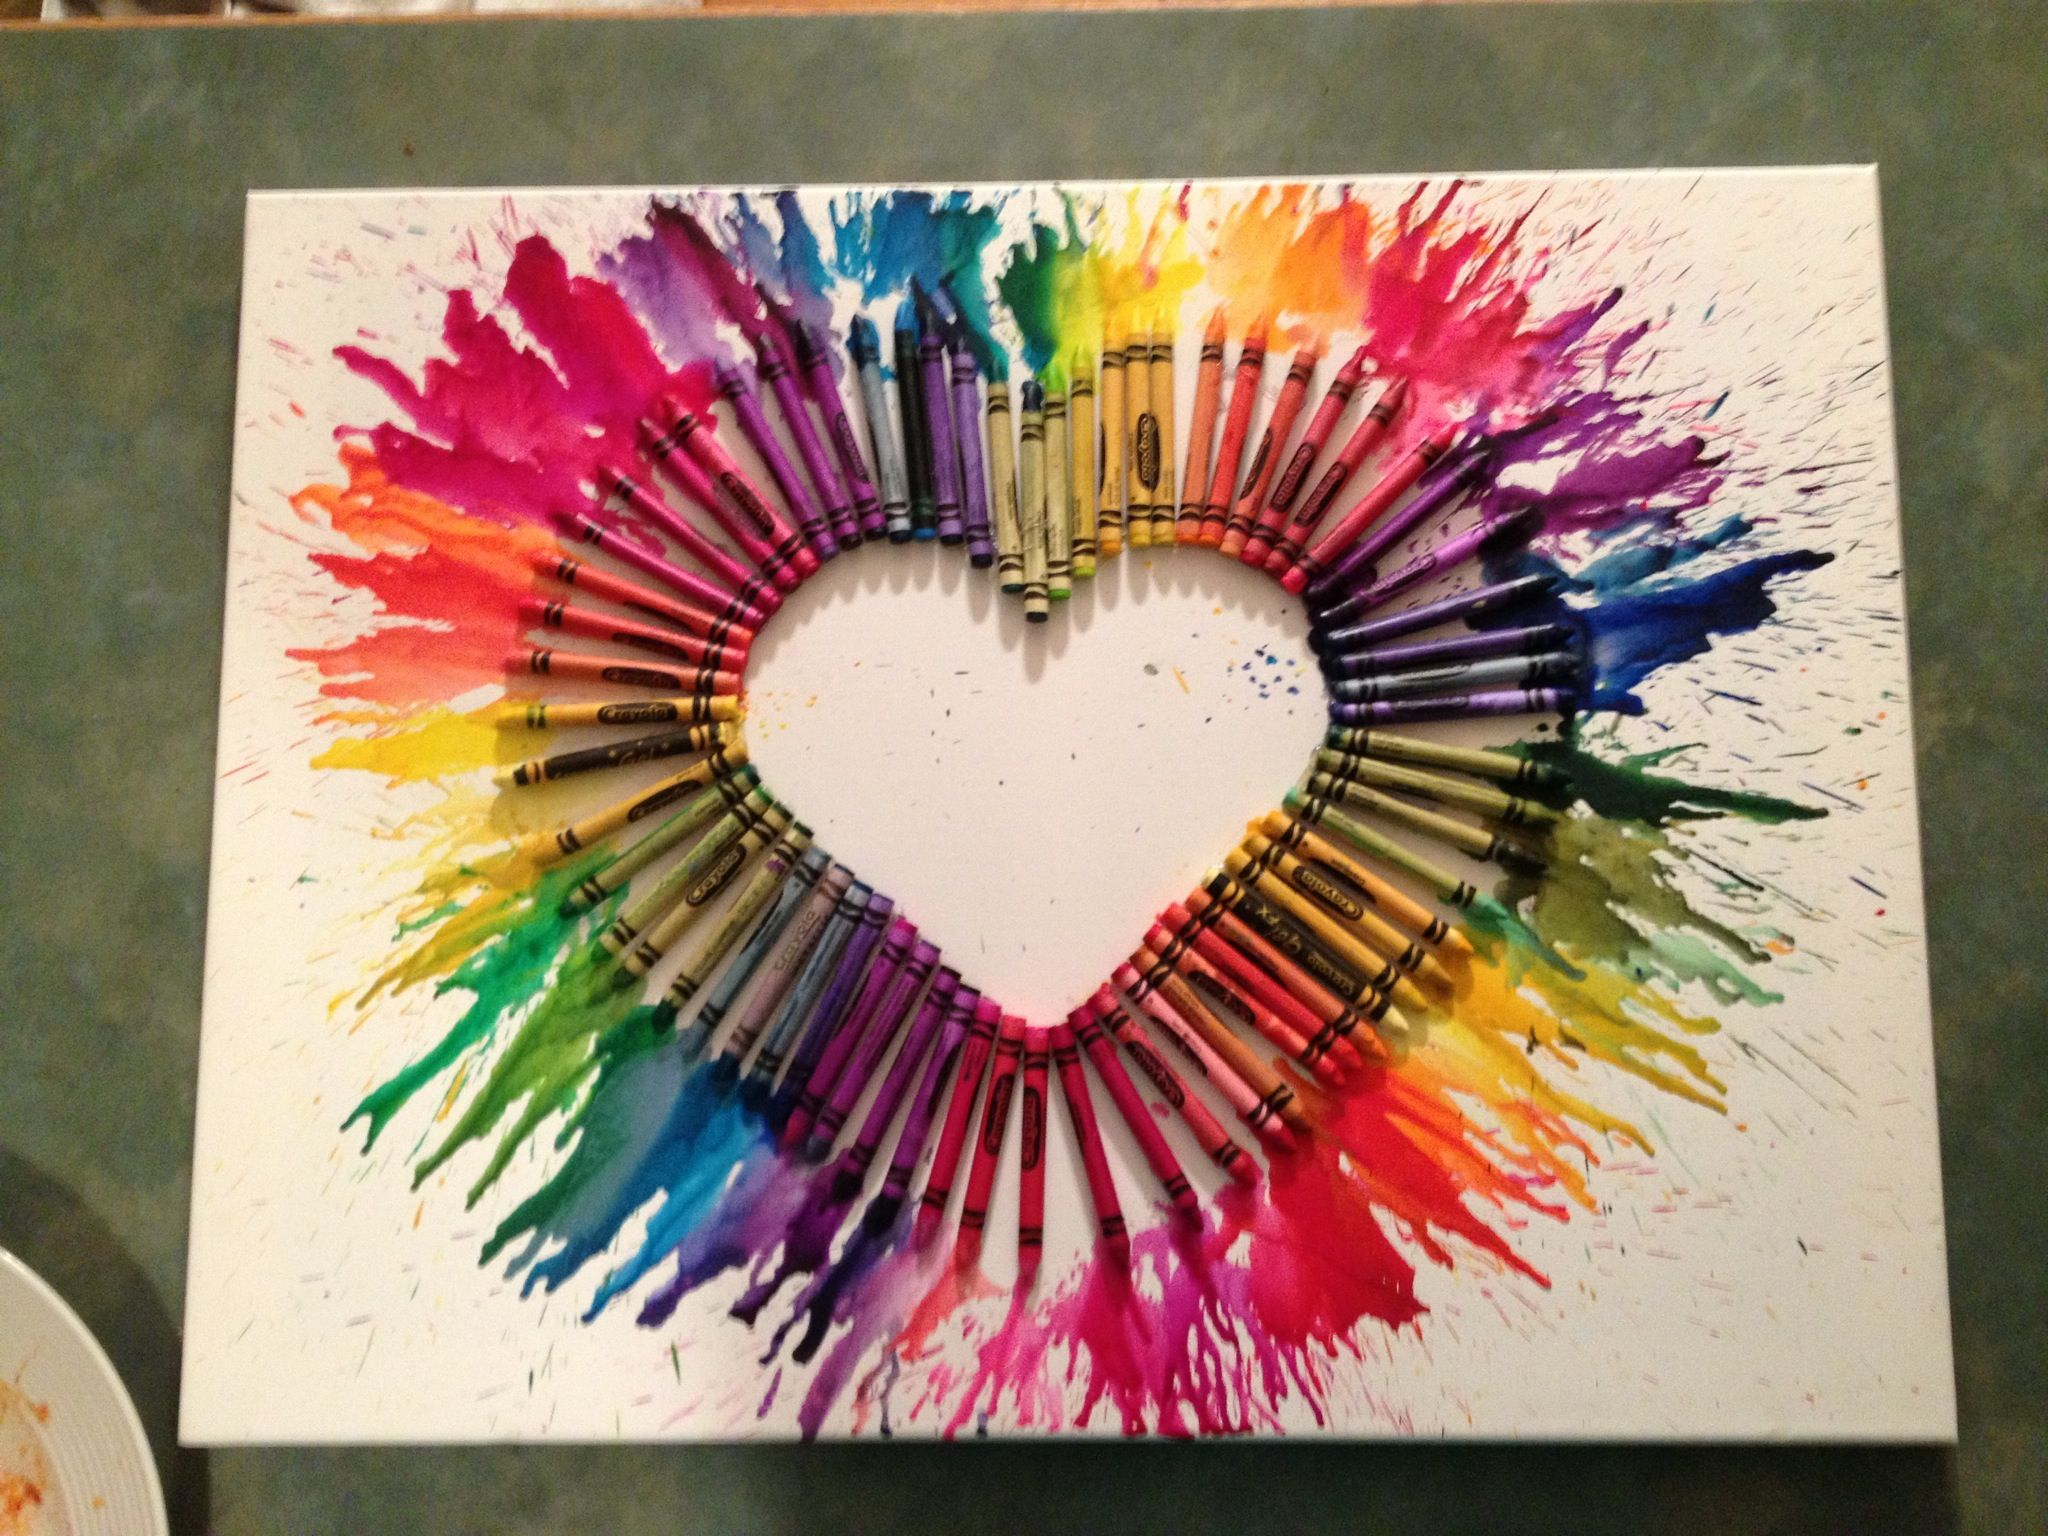 Crayon art arts and crafts project favorite crafts for Art and craft with paper easy